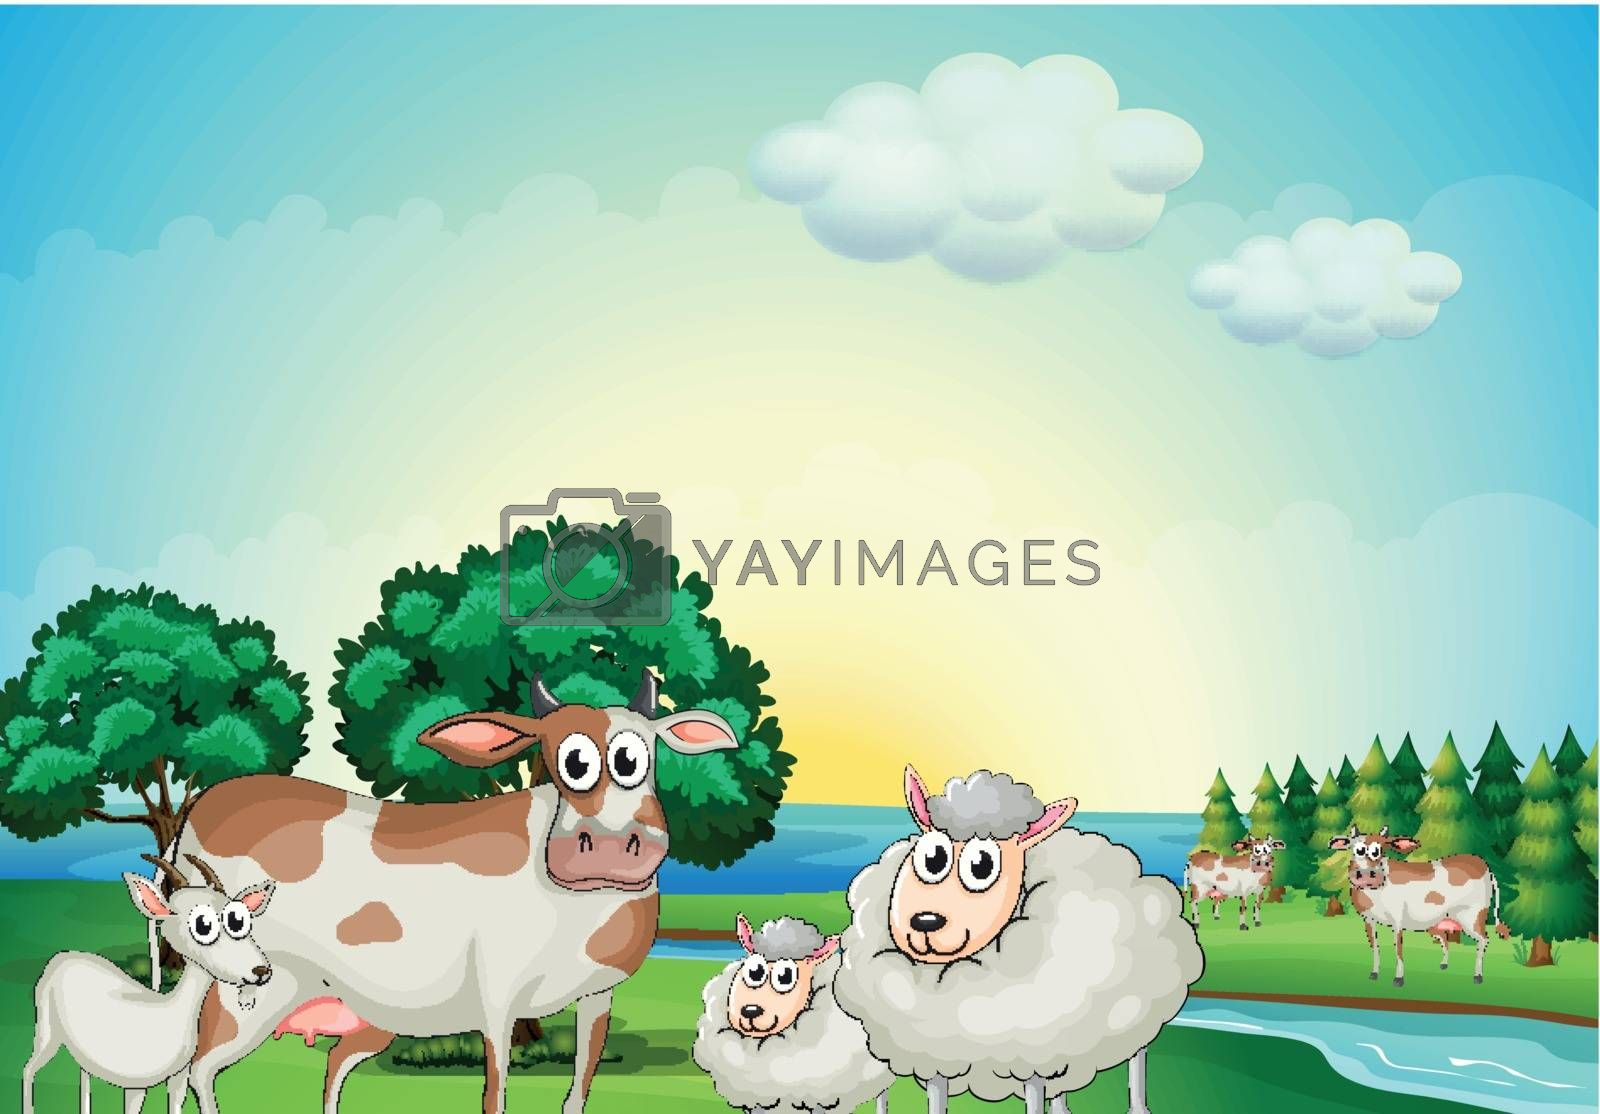 Illustration of the sheeps, cow and goat near the flowing river